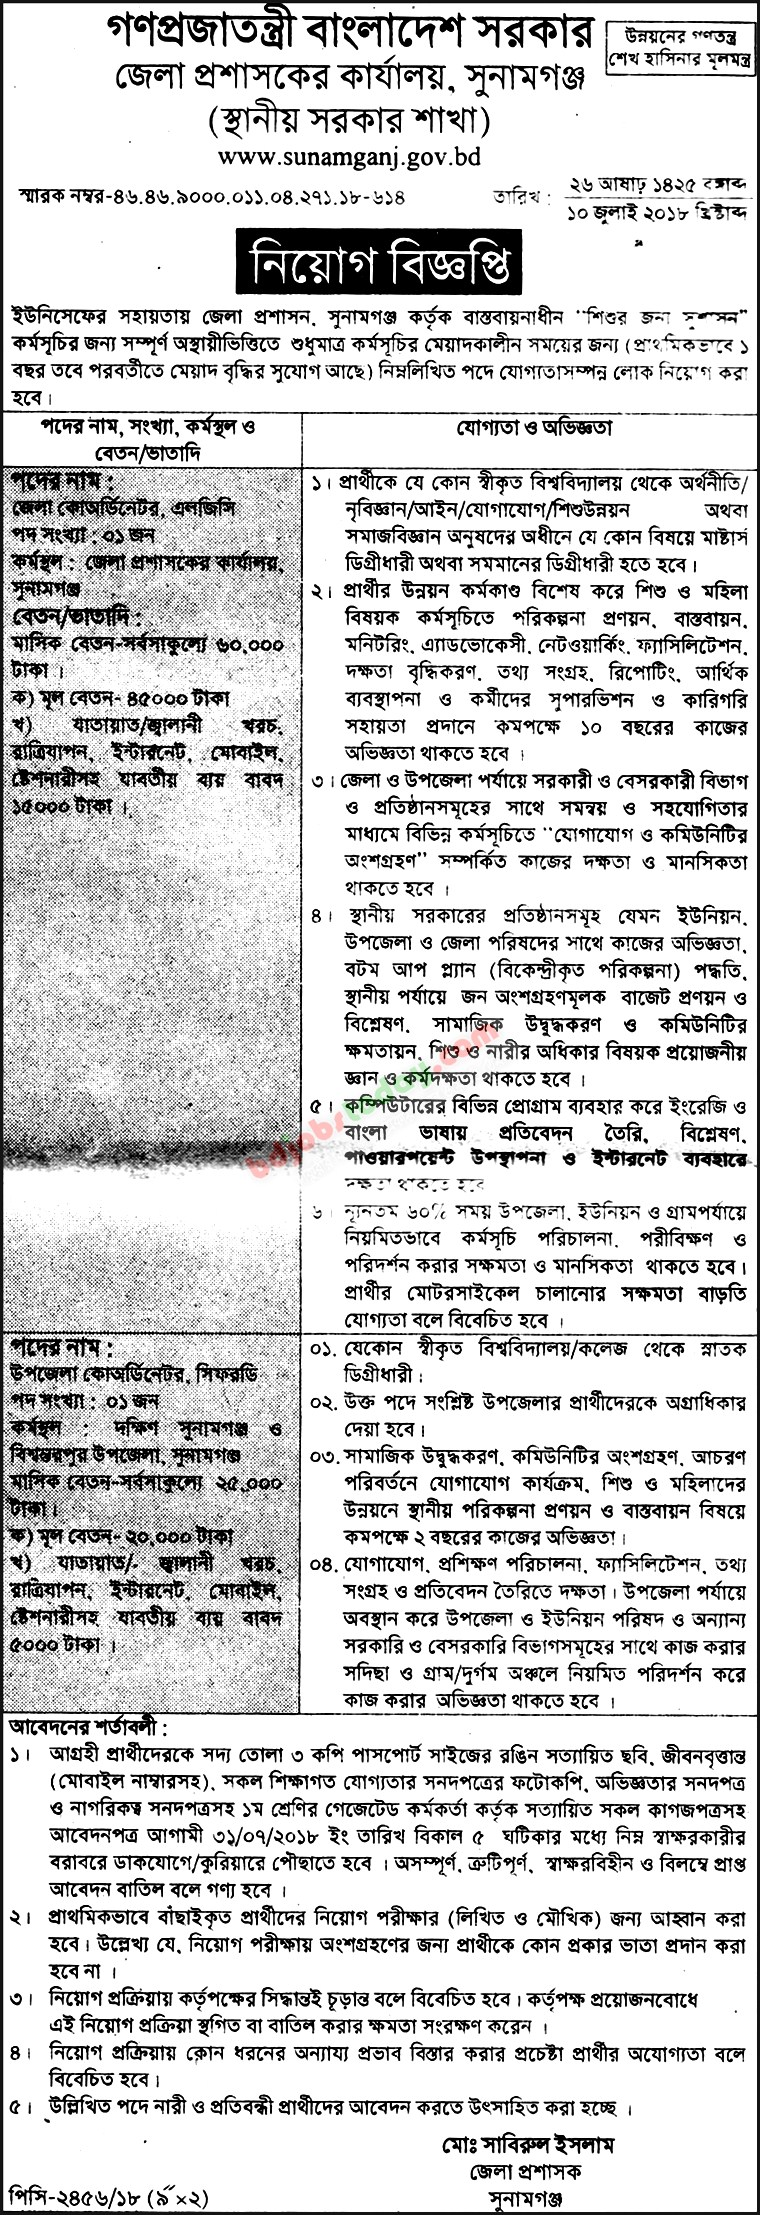 Office of District Commissioner, Sunamganj jobs